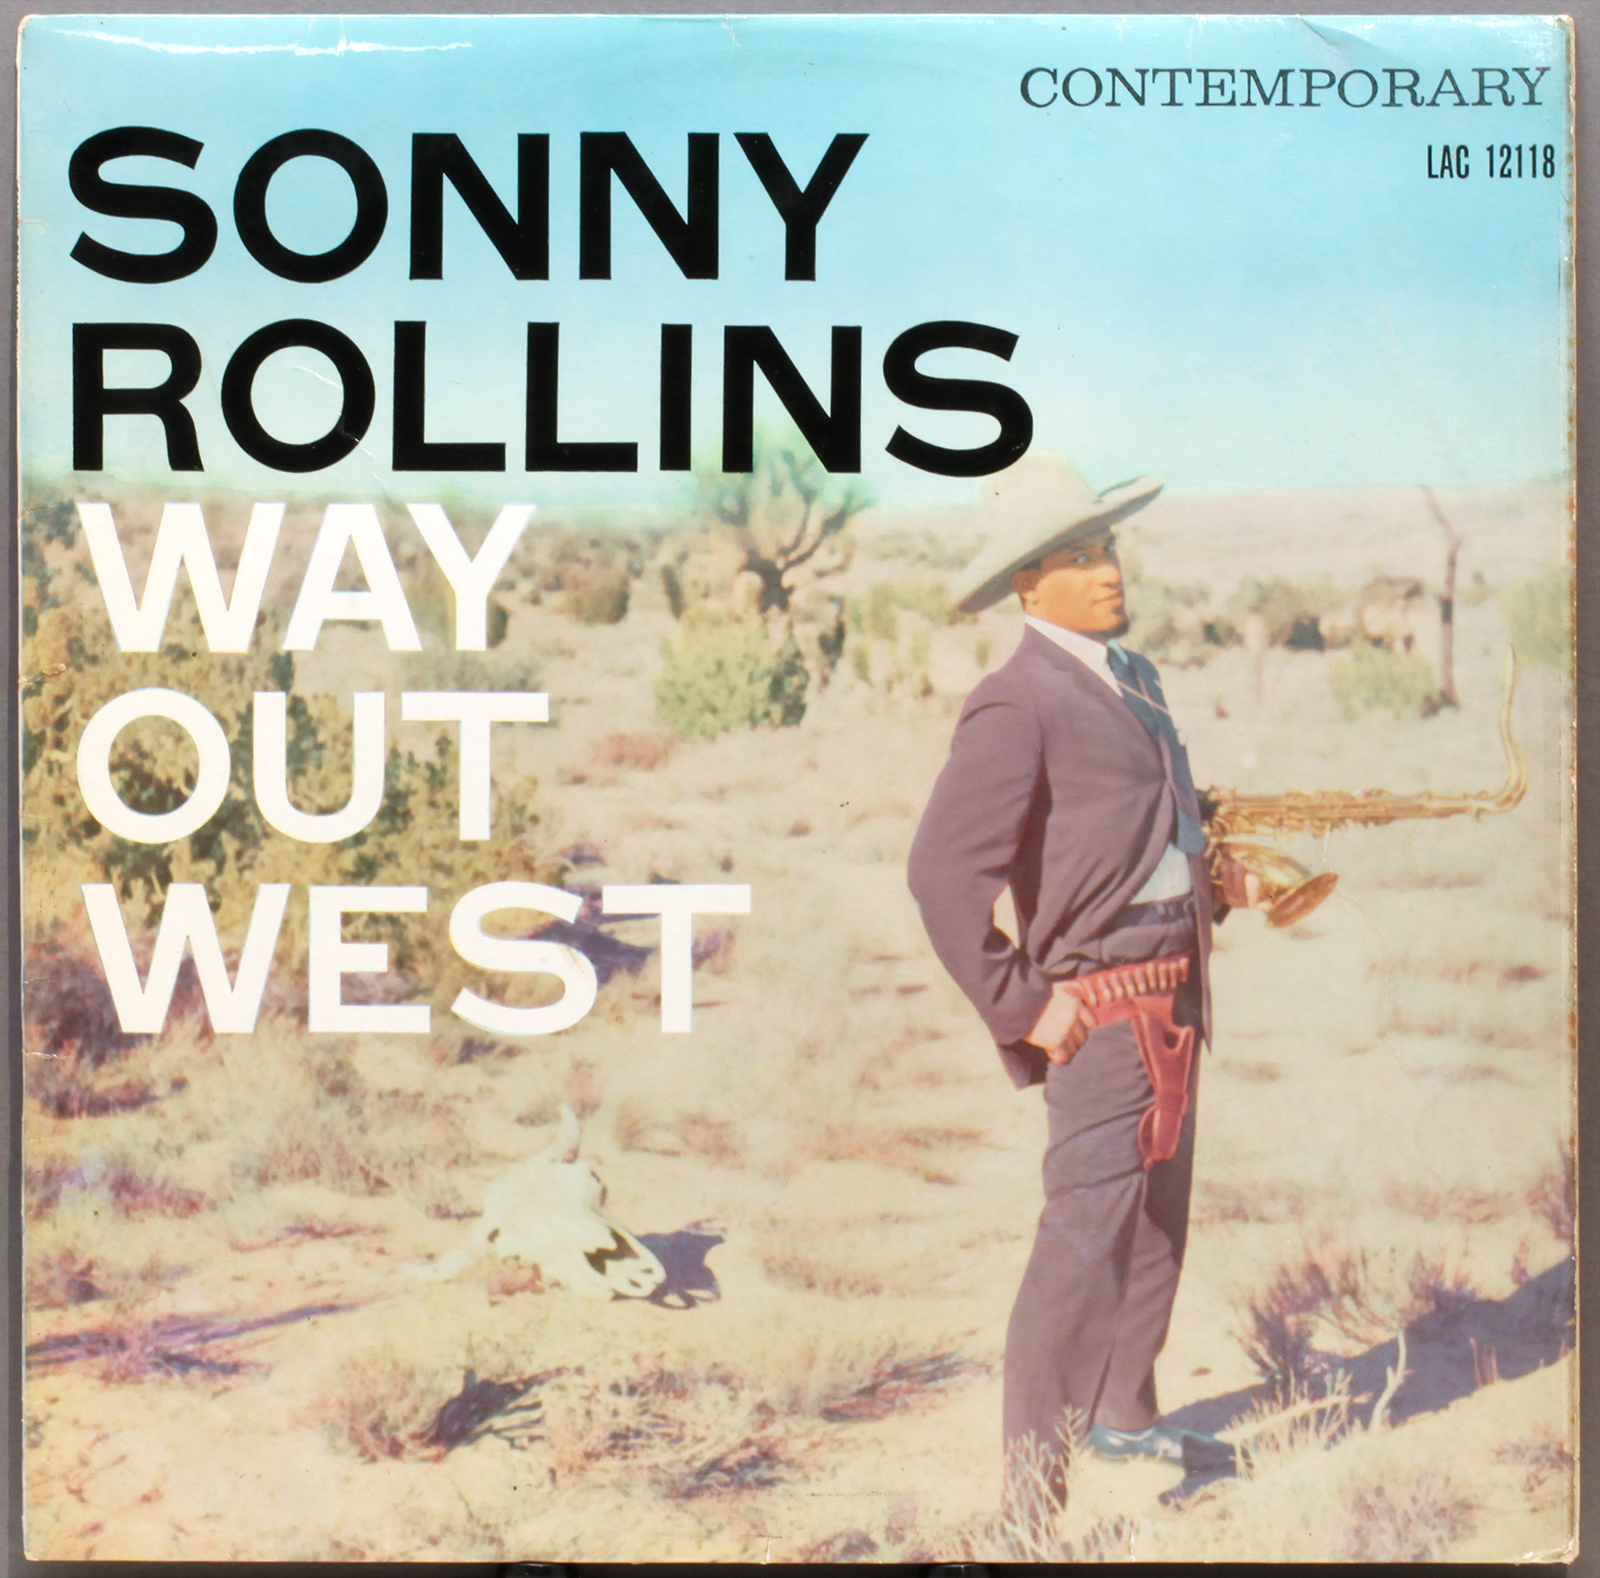 Sonny Rollins Way Out West 1957 Contemporary Vogue